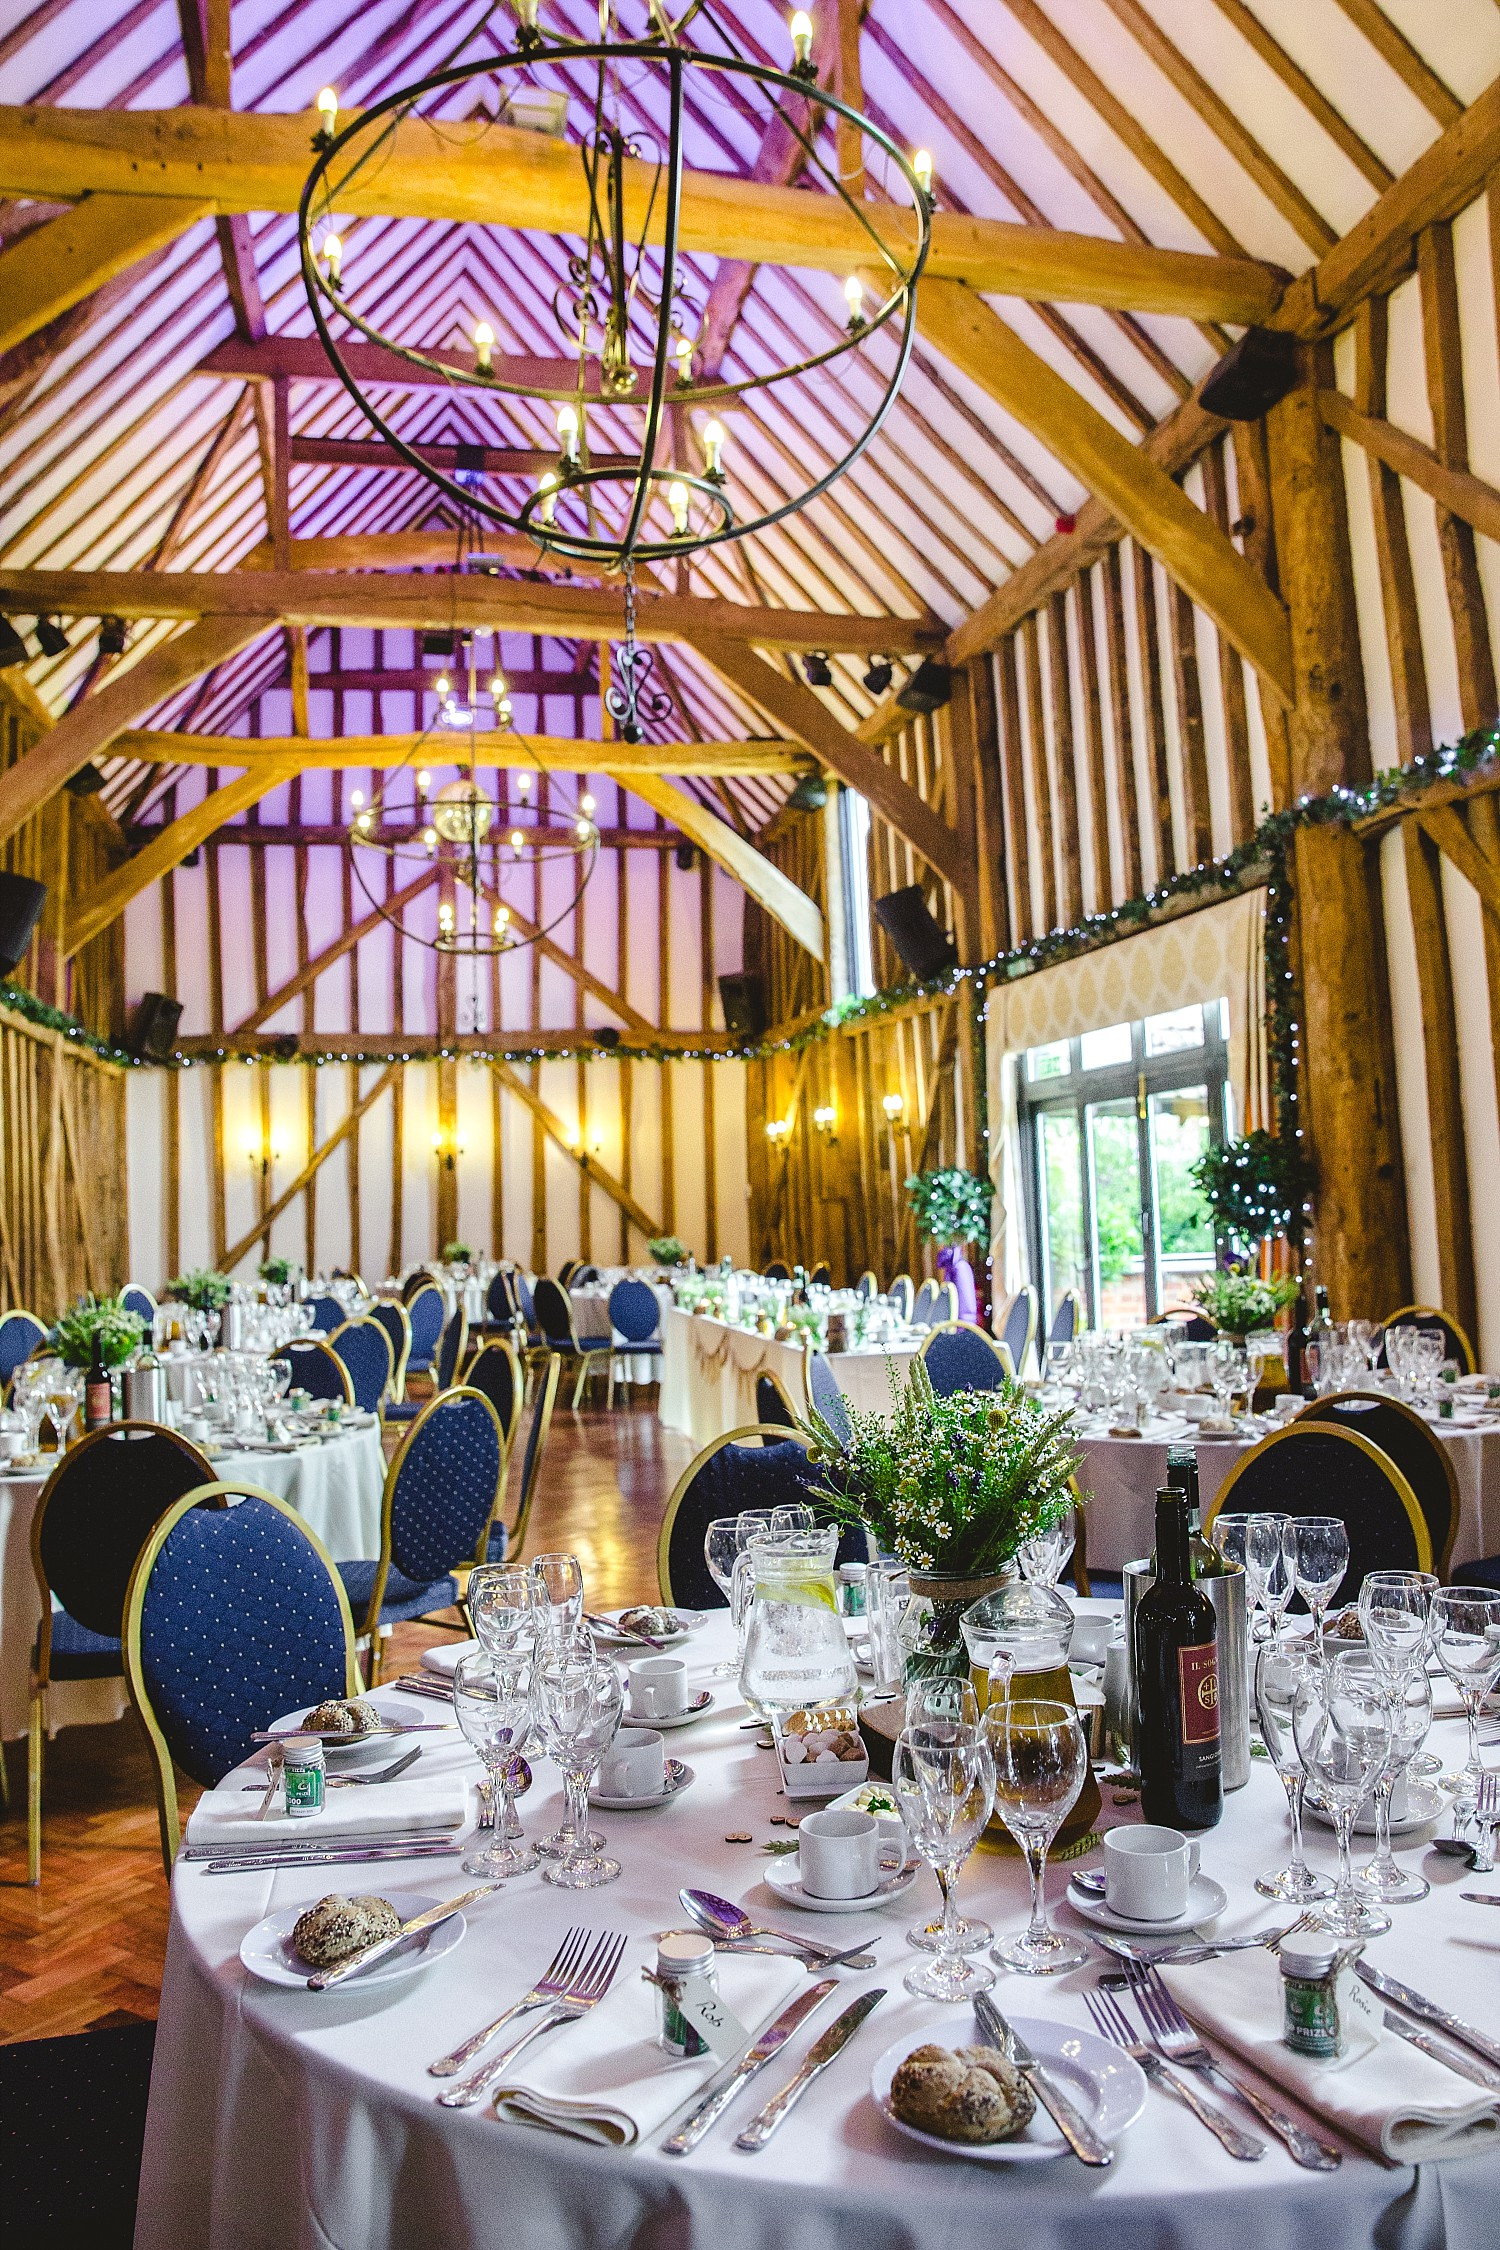 Crondon Park Wedding - Essex Barn Wedding Venue